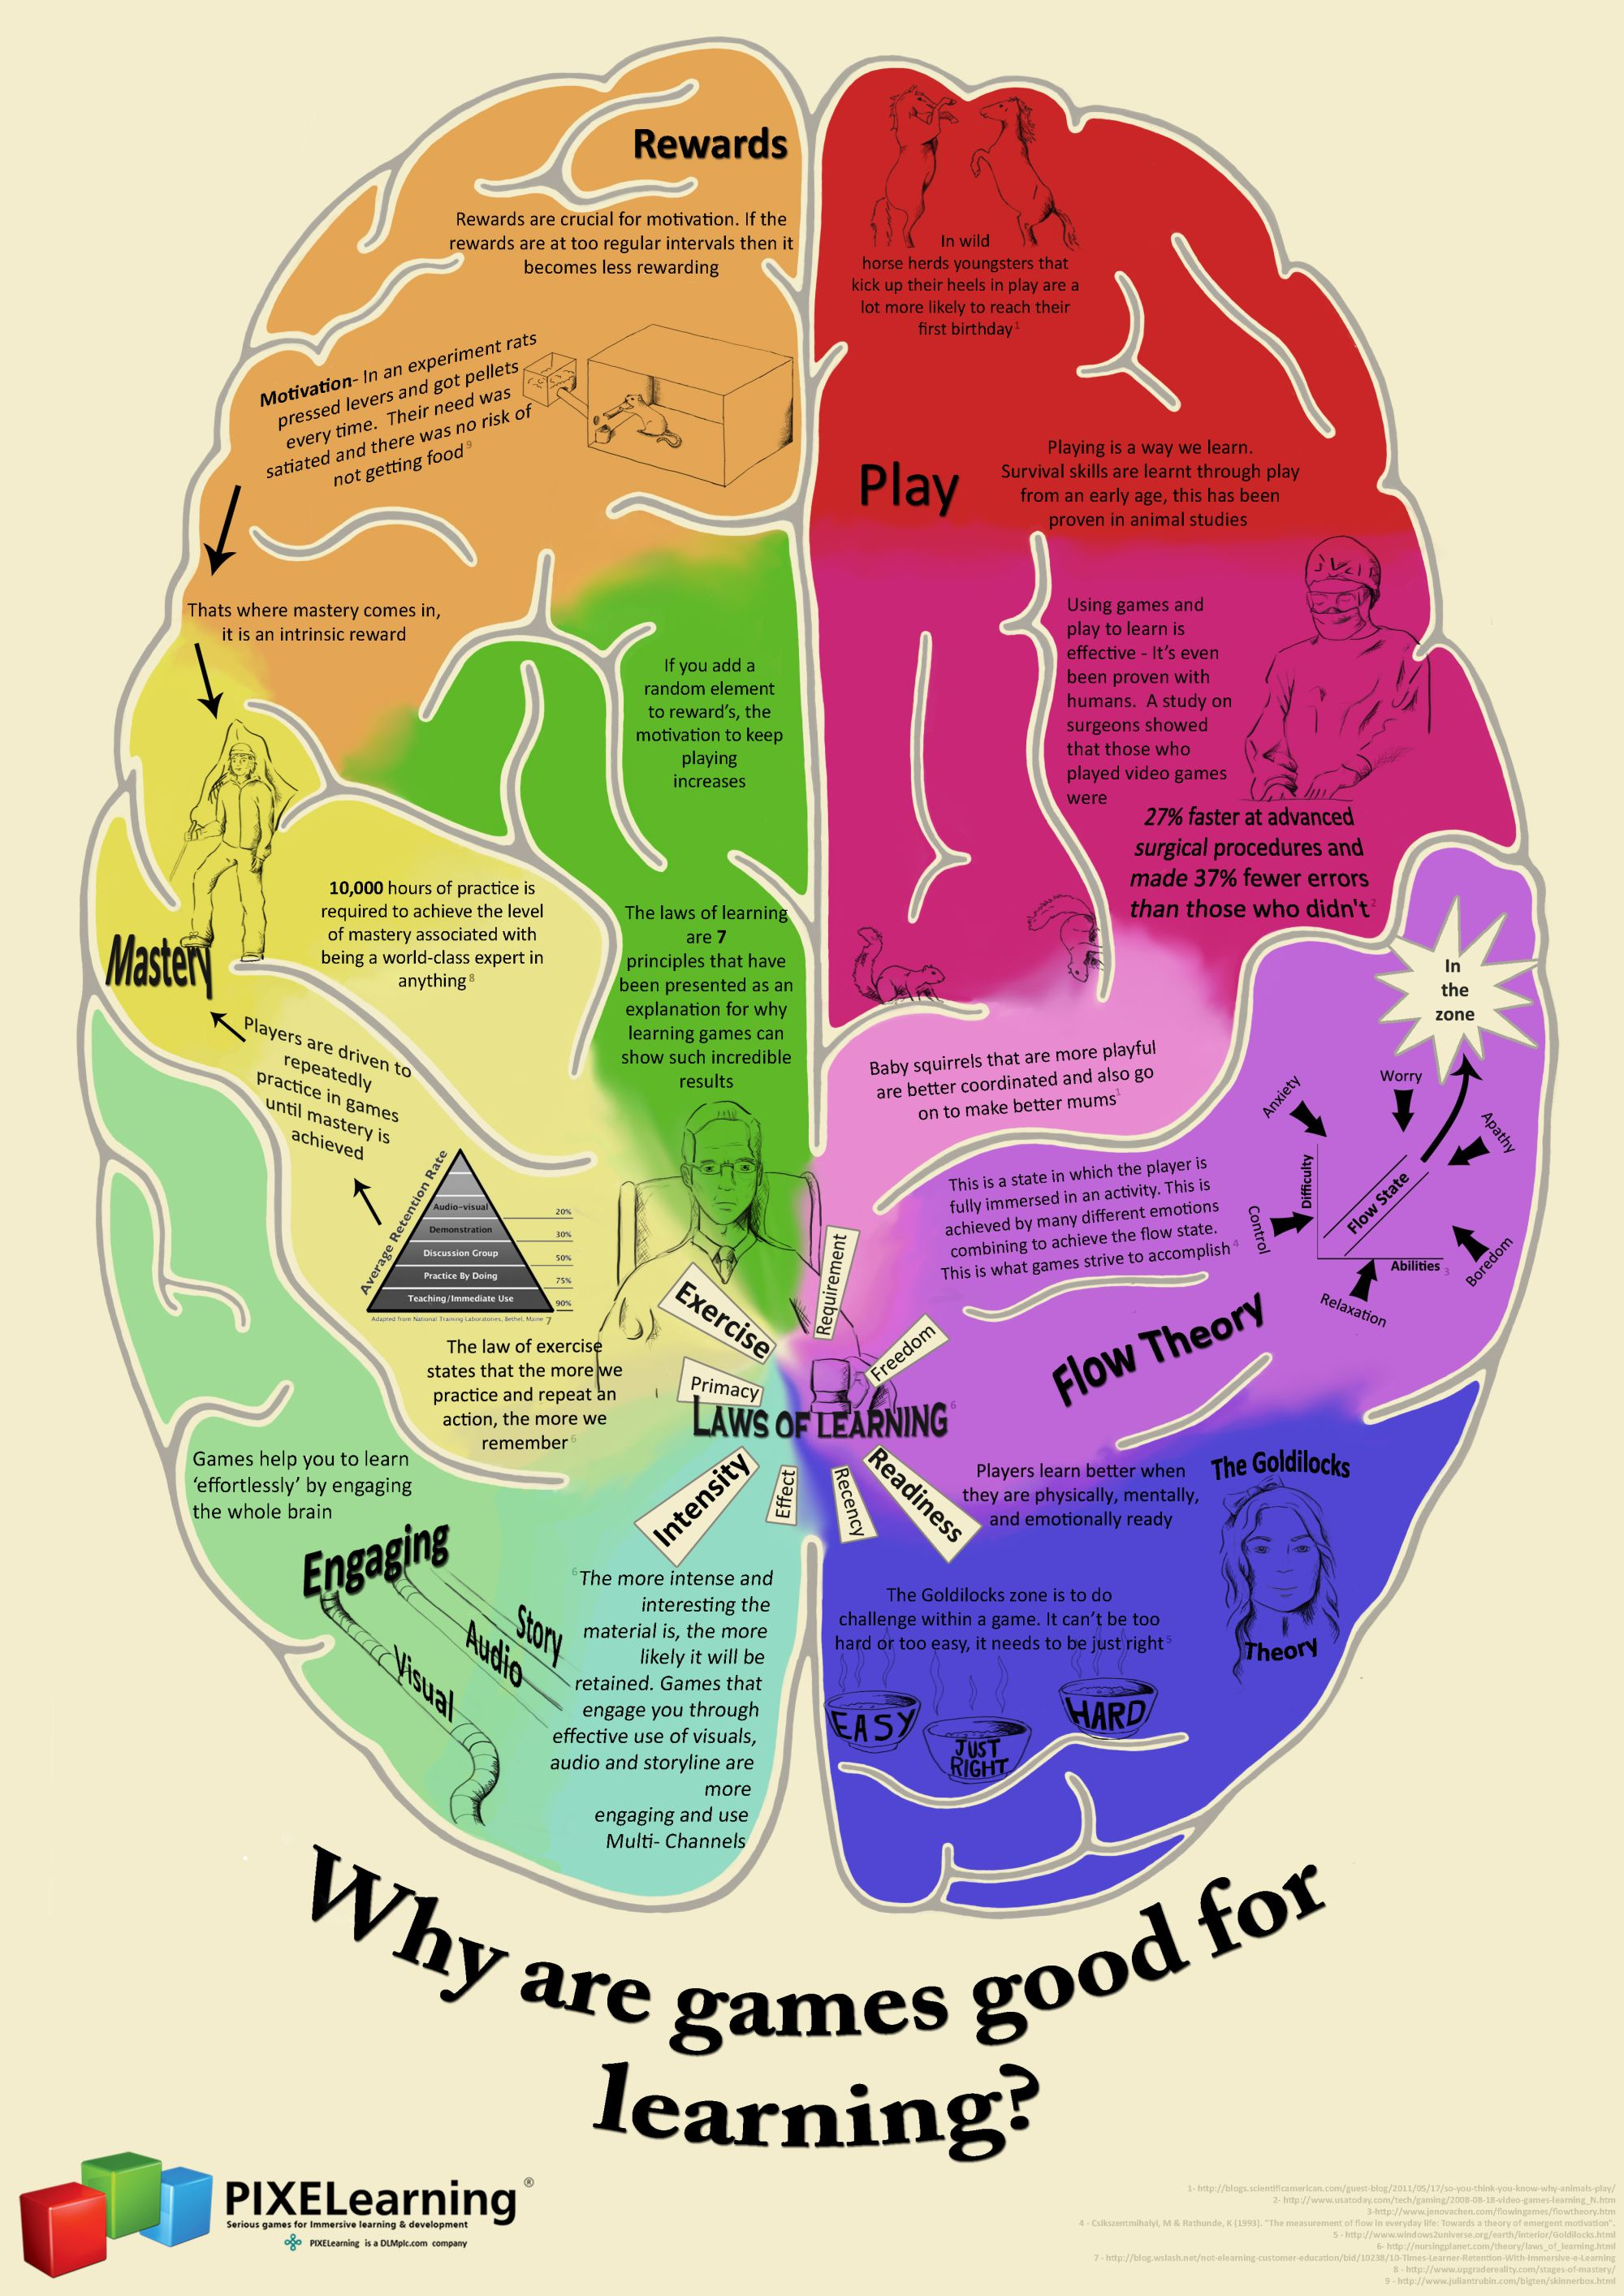 A Beautiful Visual on The Importance of Games in Learning